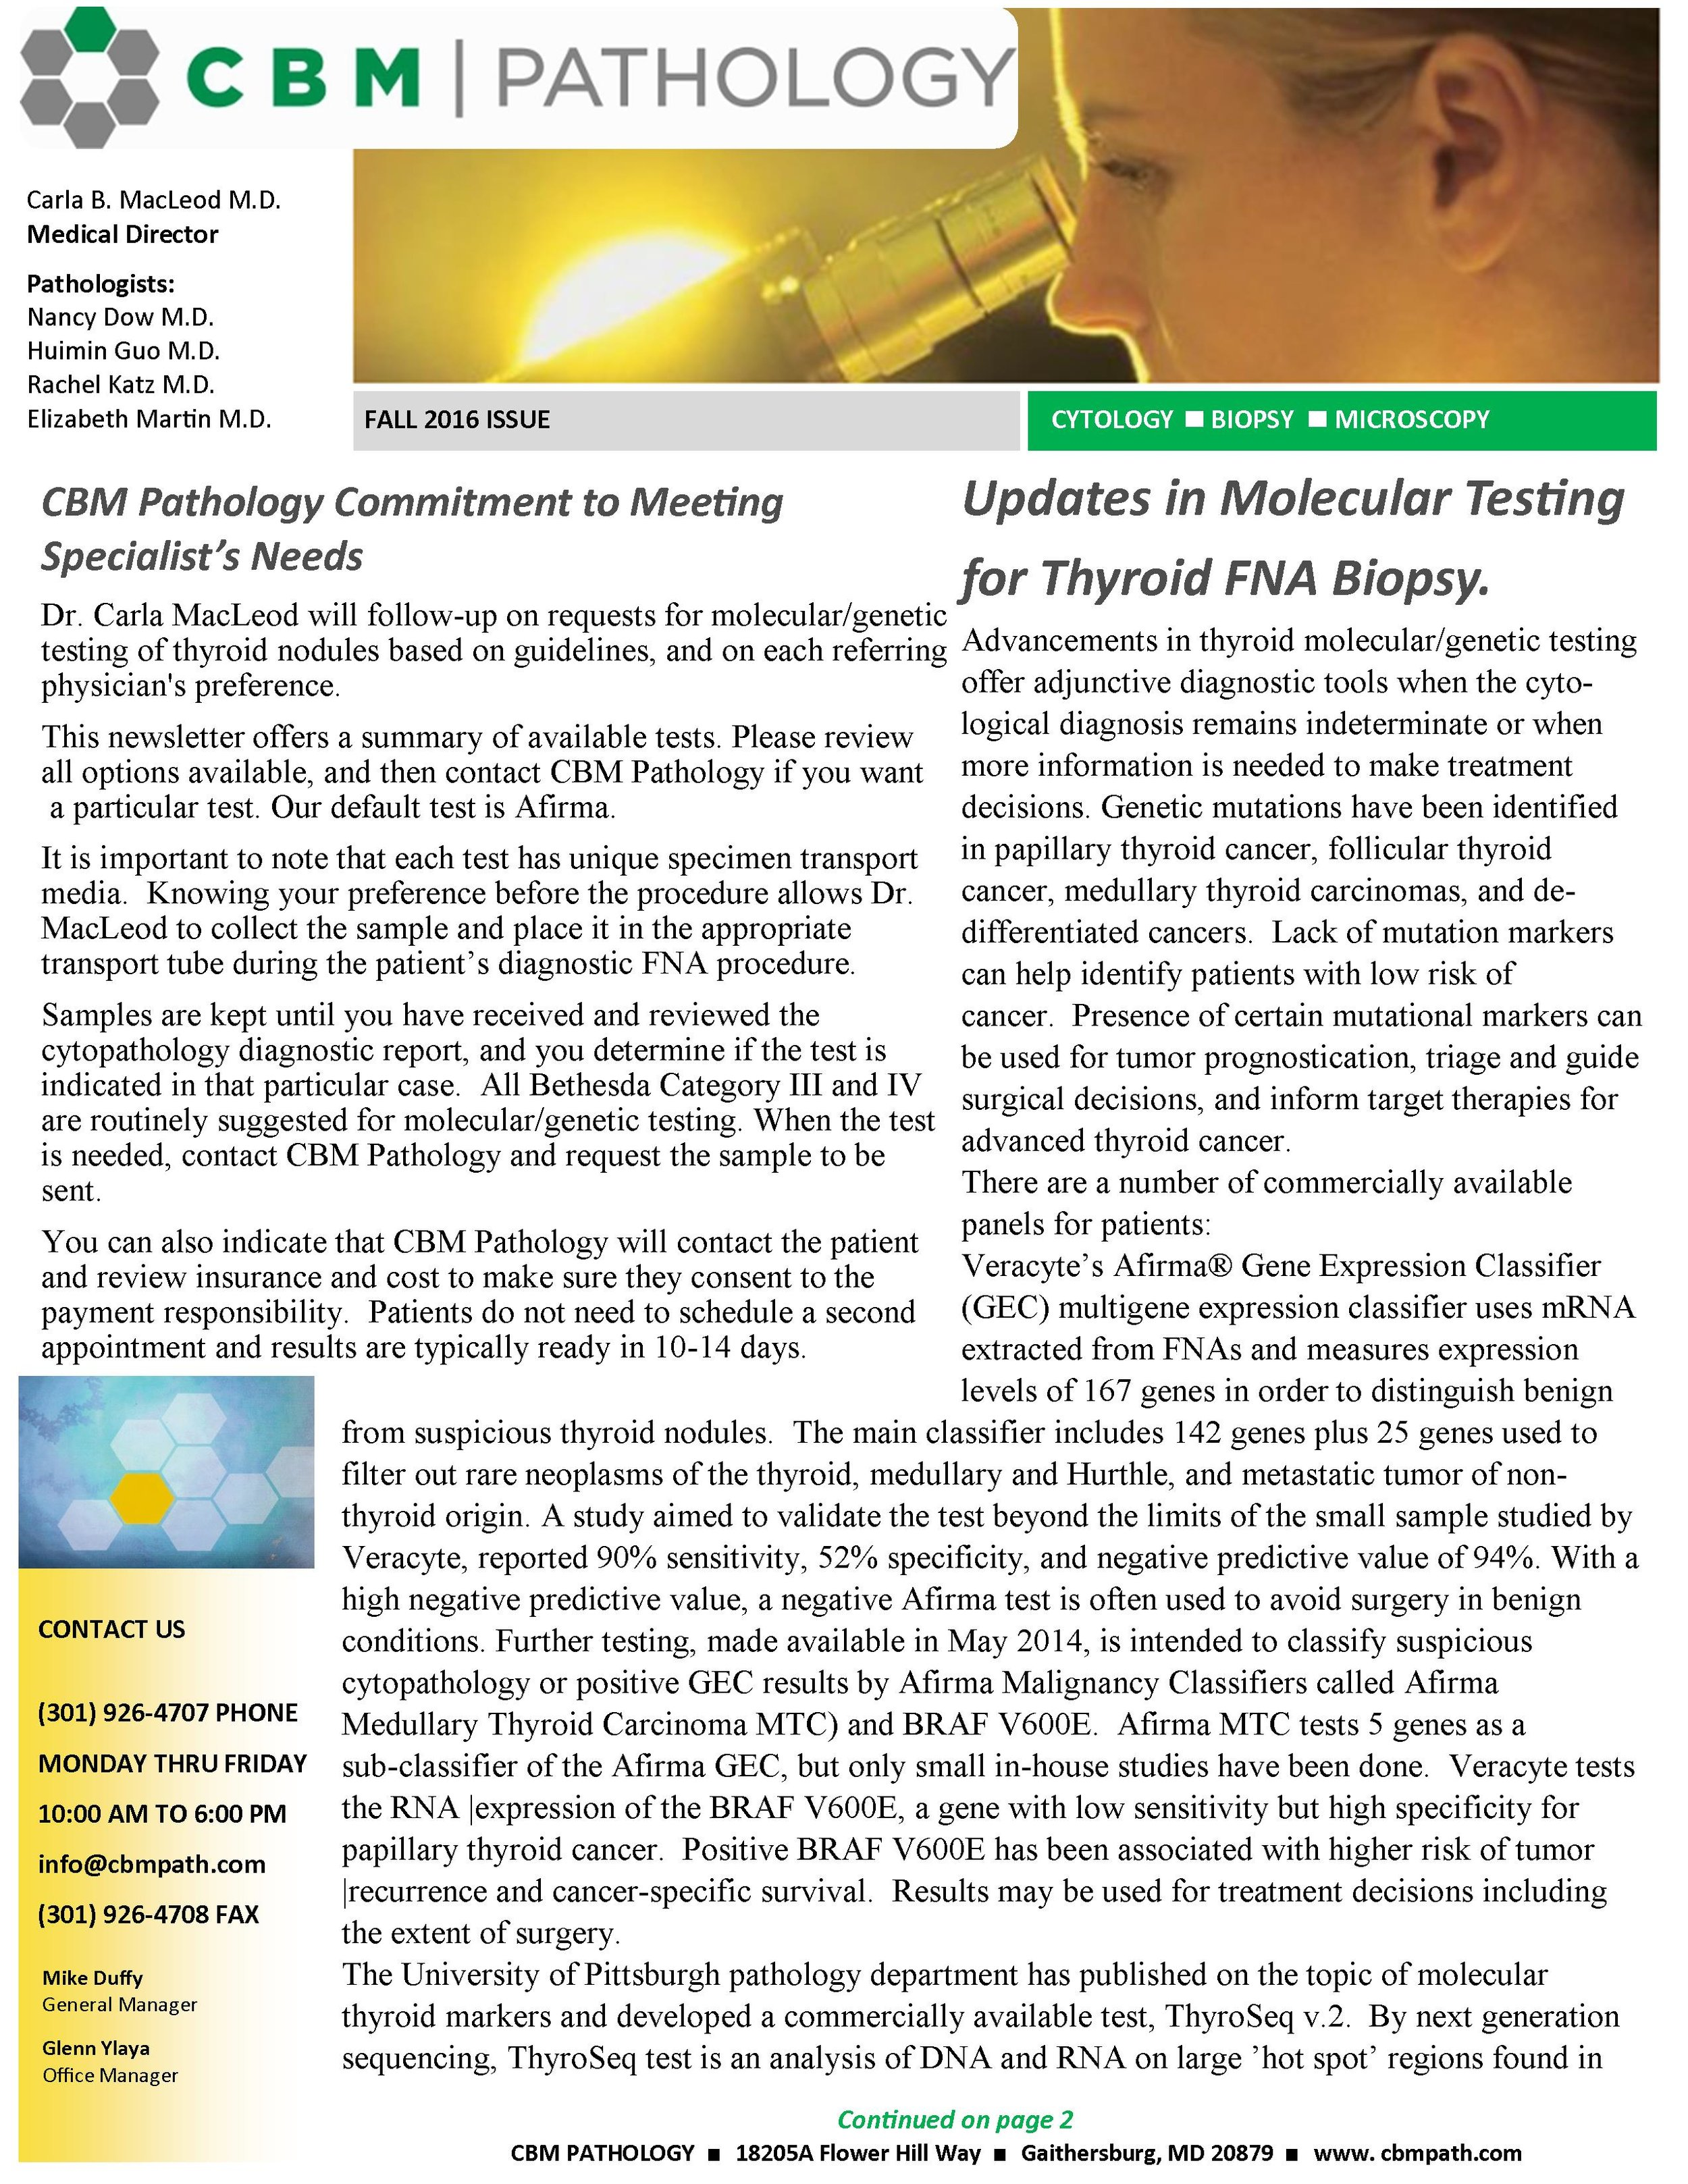 FNA Newsletter- updates in Molecular Thyroid Testing, 08.16.jpg